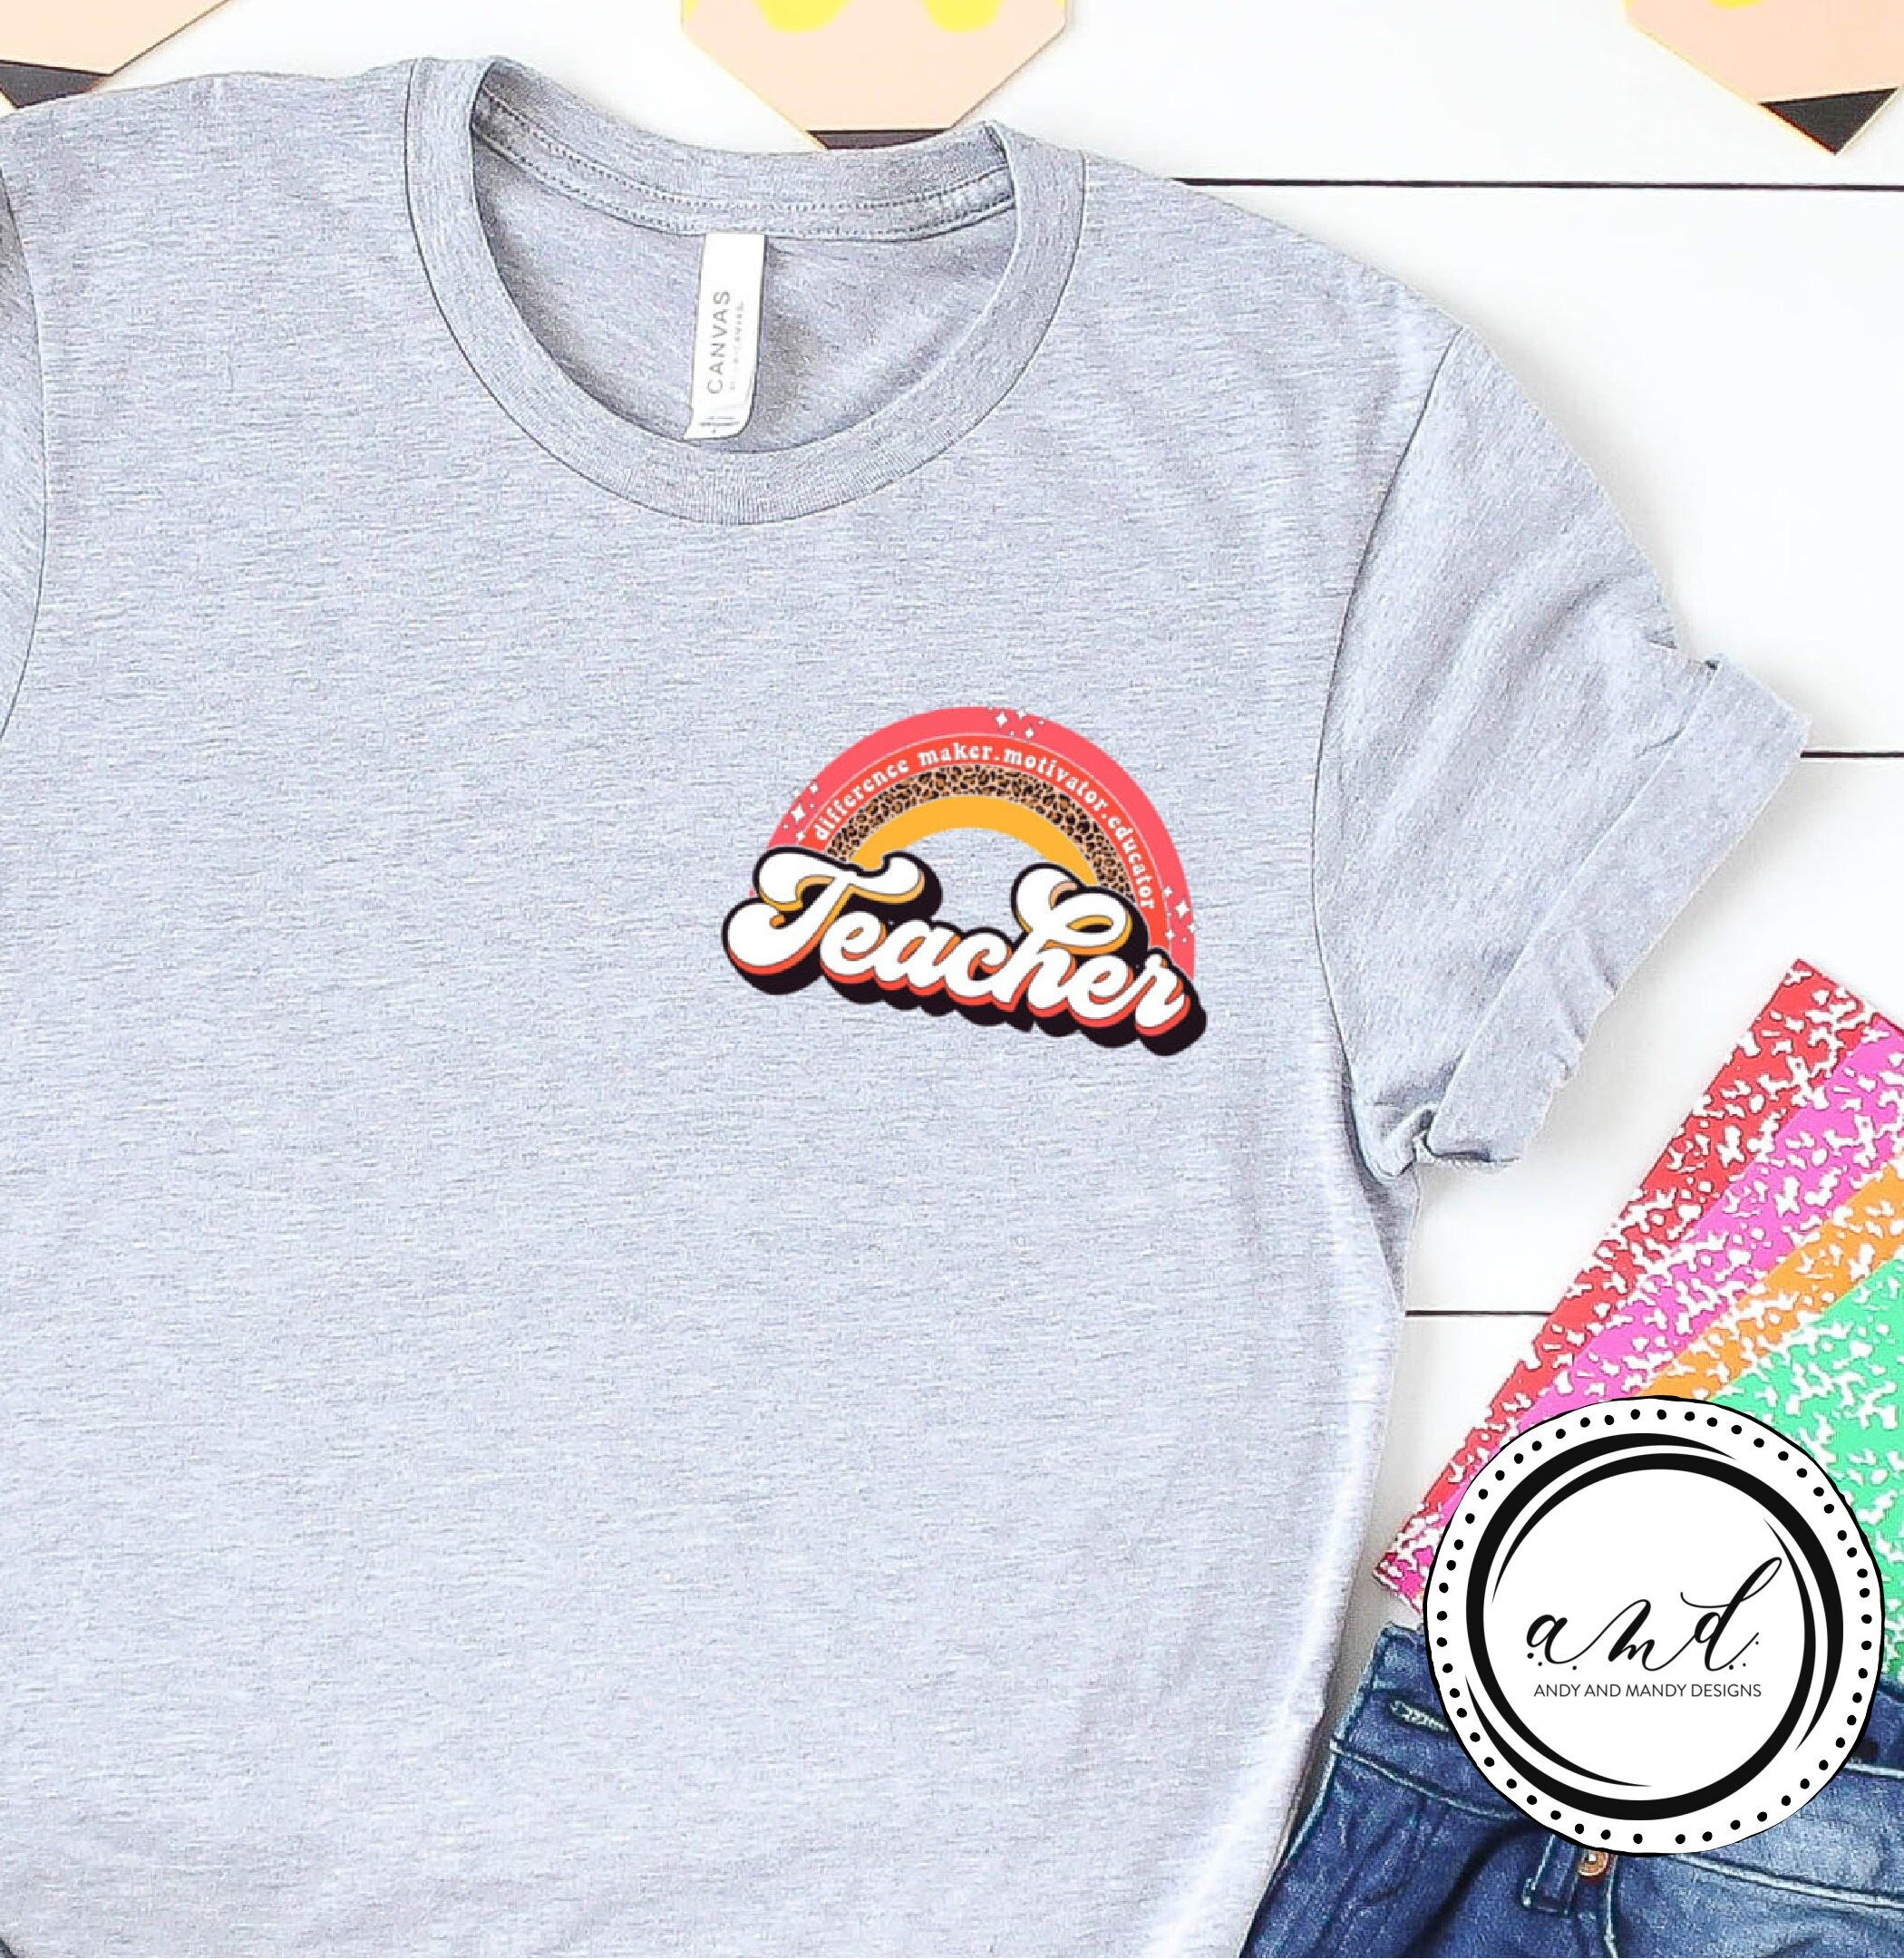 """""""Rainbow Teacher Shirt, Inspirational Teacher Shirts, Teach Love, Back To School, First Grade Teacher Shirts, Teacher Appreciation Shirt Super soft and comfy unisex t shirts. Shirt with FULL color plastisol ink screen print transfer on left \""""pocket\"""" area. Shirts DO NOT HAVE POCKETS. Part of our best selling themed shirts for you. Super soft and comfy fun relaxed look. Perfect shirt to add to your daily wardrobe. Grab those passerby glances as you run your errands. Tshirt fits like a beloved fa"""